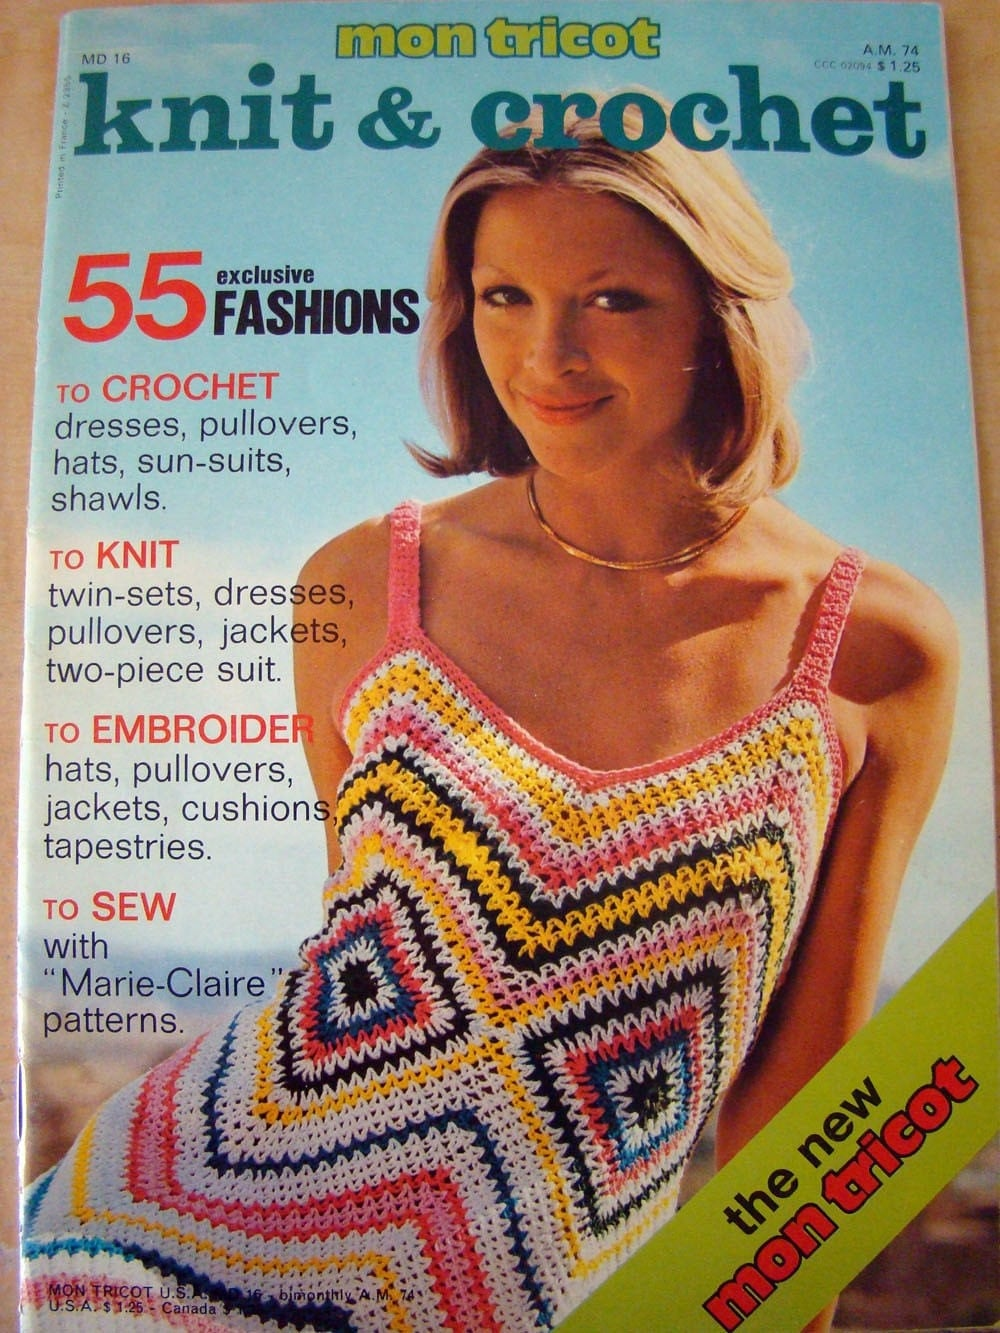 Crochet Magazines List : MON TRICOT Knit and Crochet Magazine fom 1974 by bontonvintage